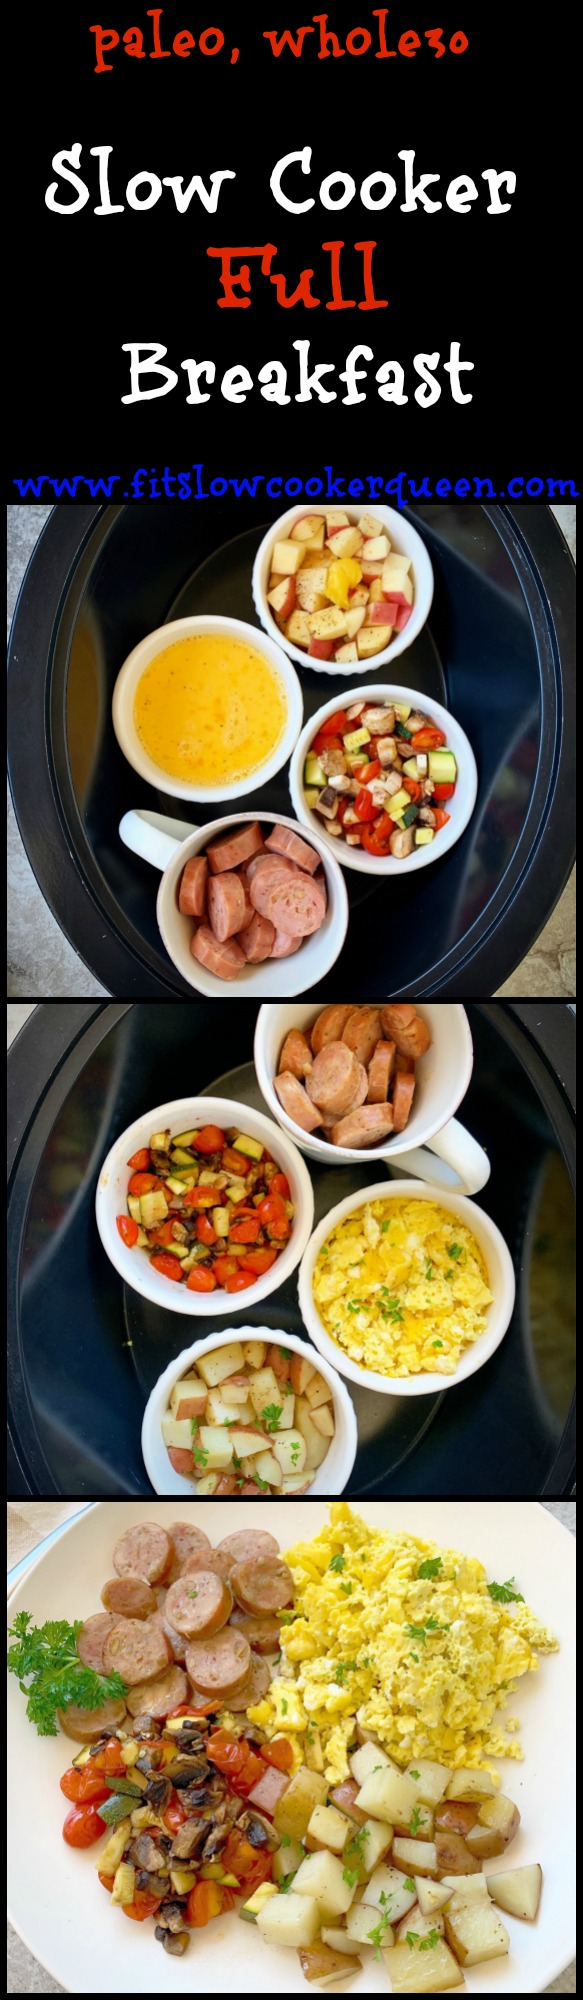 another pinterest pin for Slow Cooker Full Breakfast (Paleo,Whole30) pin2